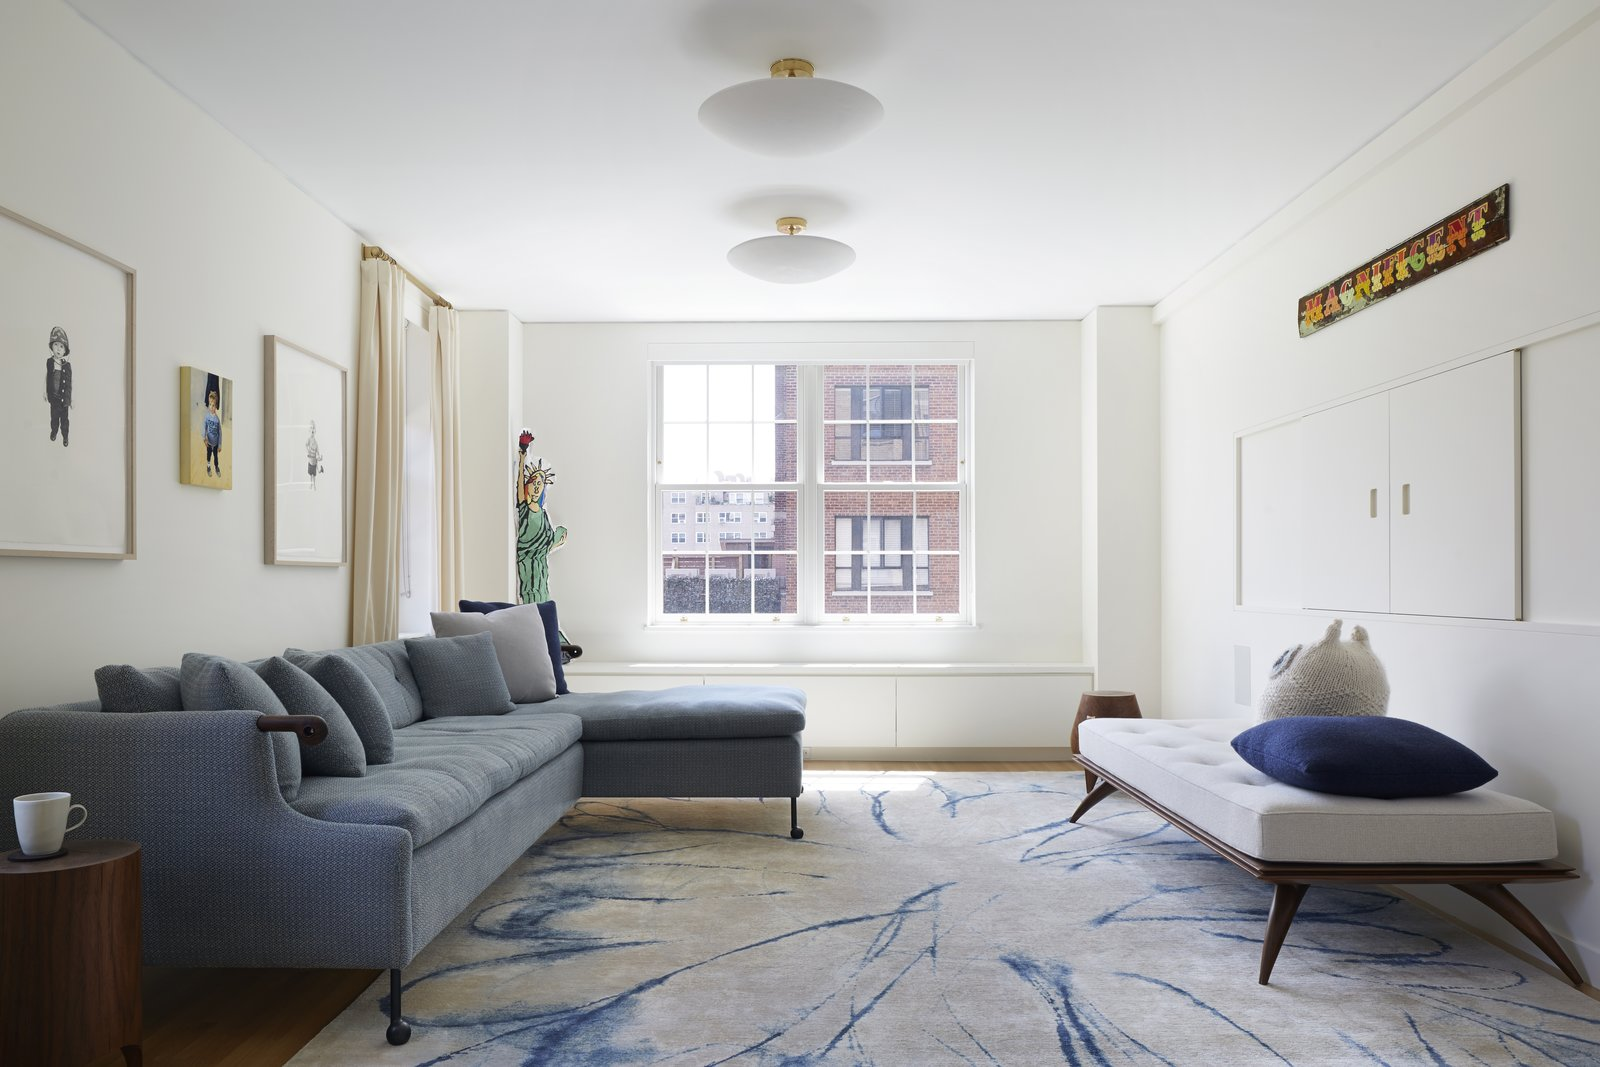 View from the entry to the Living Room.  Furniture by BDDW, Paul Mathieu and Kieran Kinsella.  The area rug is by Fort Street Studio.  The cast plaster ceiling fixtures are by Pulltab and Remains Lighting.   from 5th Avenue Residence